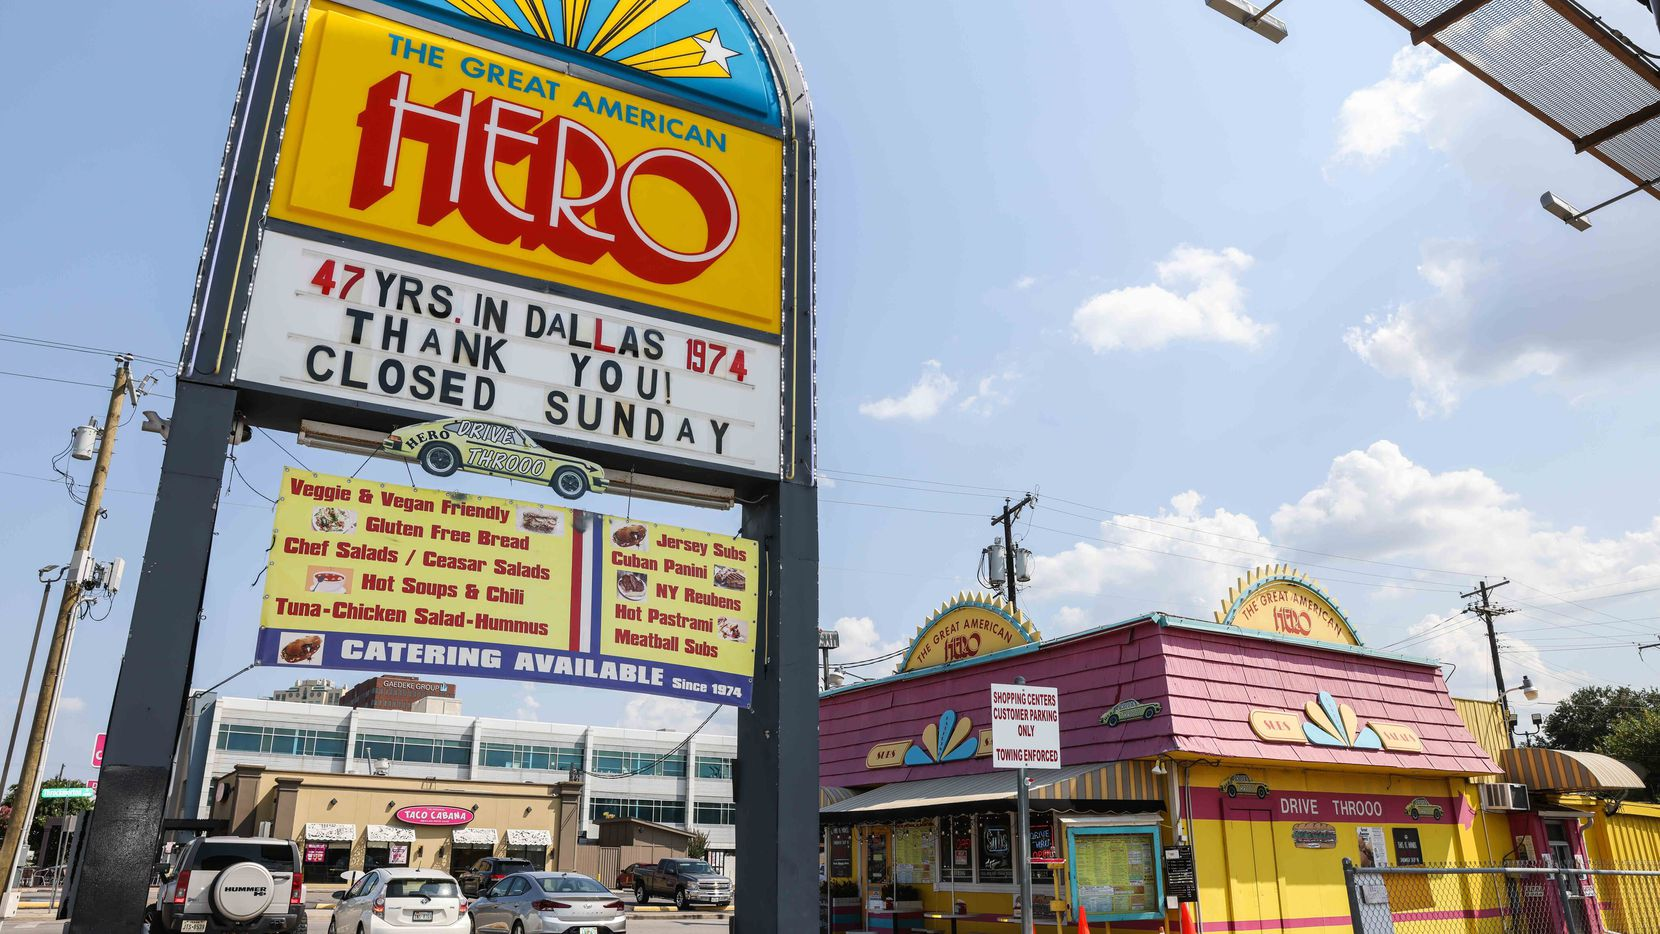 The Great American Hero in Dallas on Saturday, July 31, 2021. The shop is closing after 47 years.